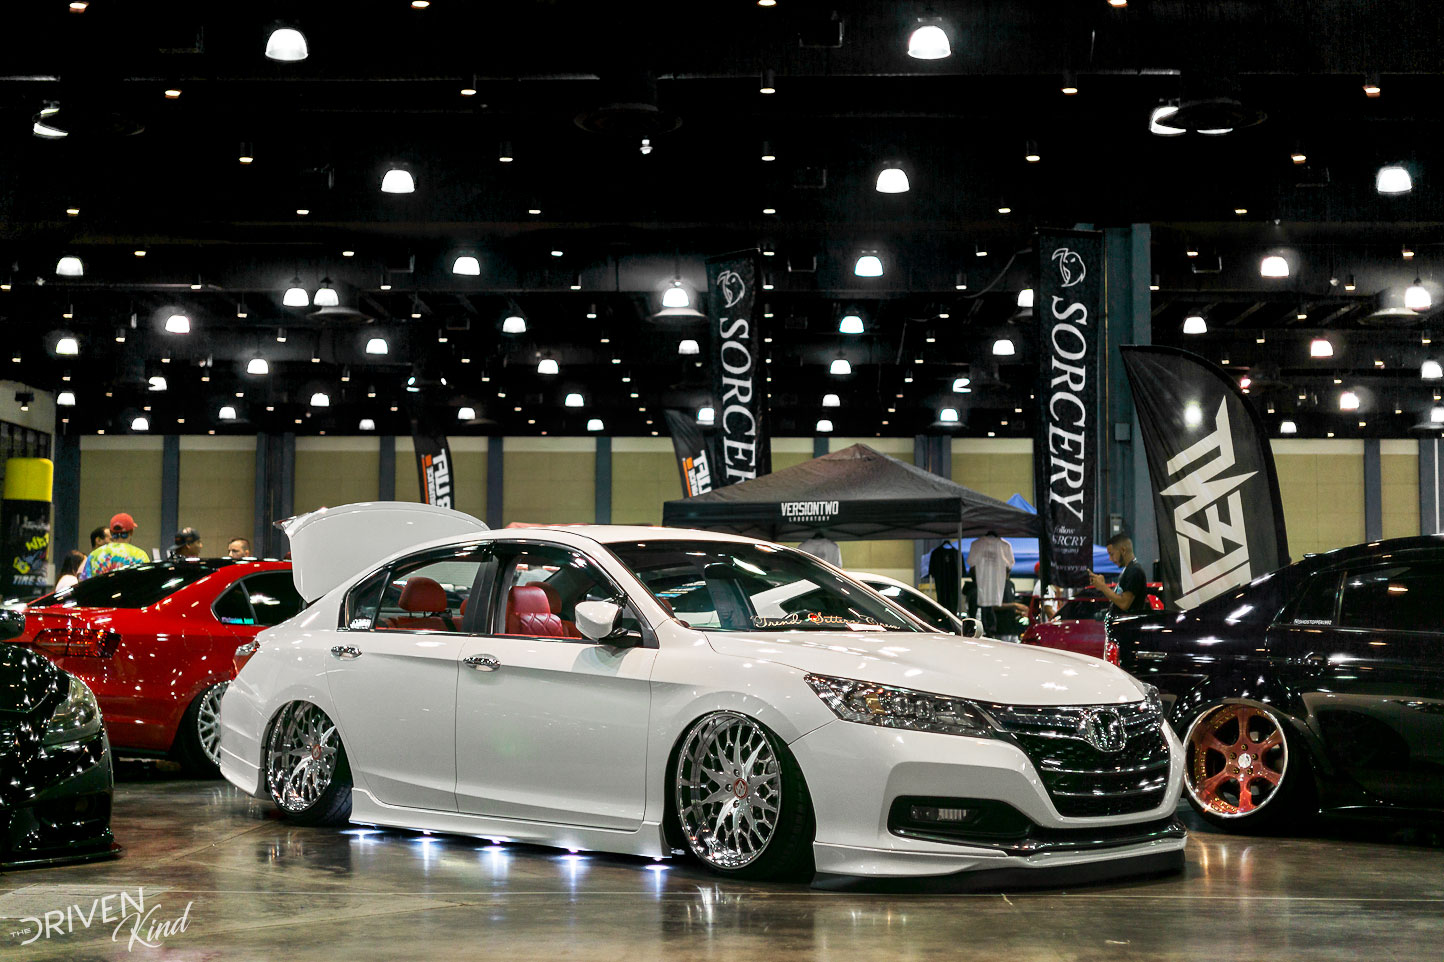 Honda Accord JDM STANCENATION FLORIDA PALM BEACH CONVENTION CENTER 2017 Pt. 2 The Driven Kind Coverage